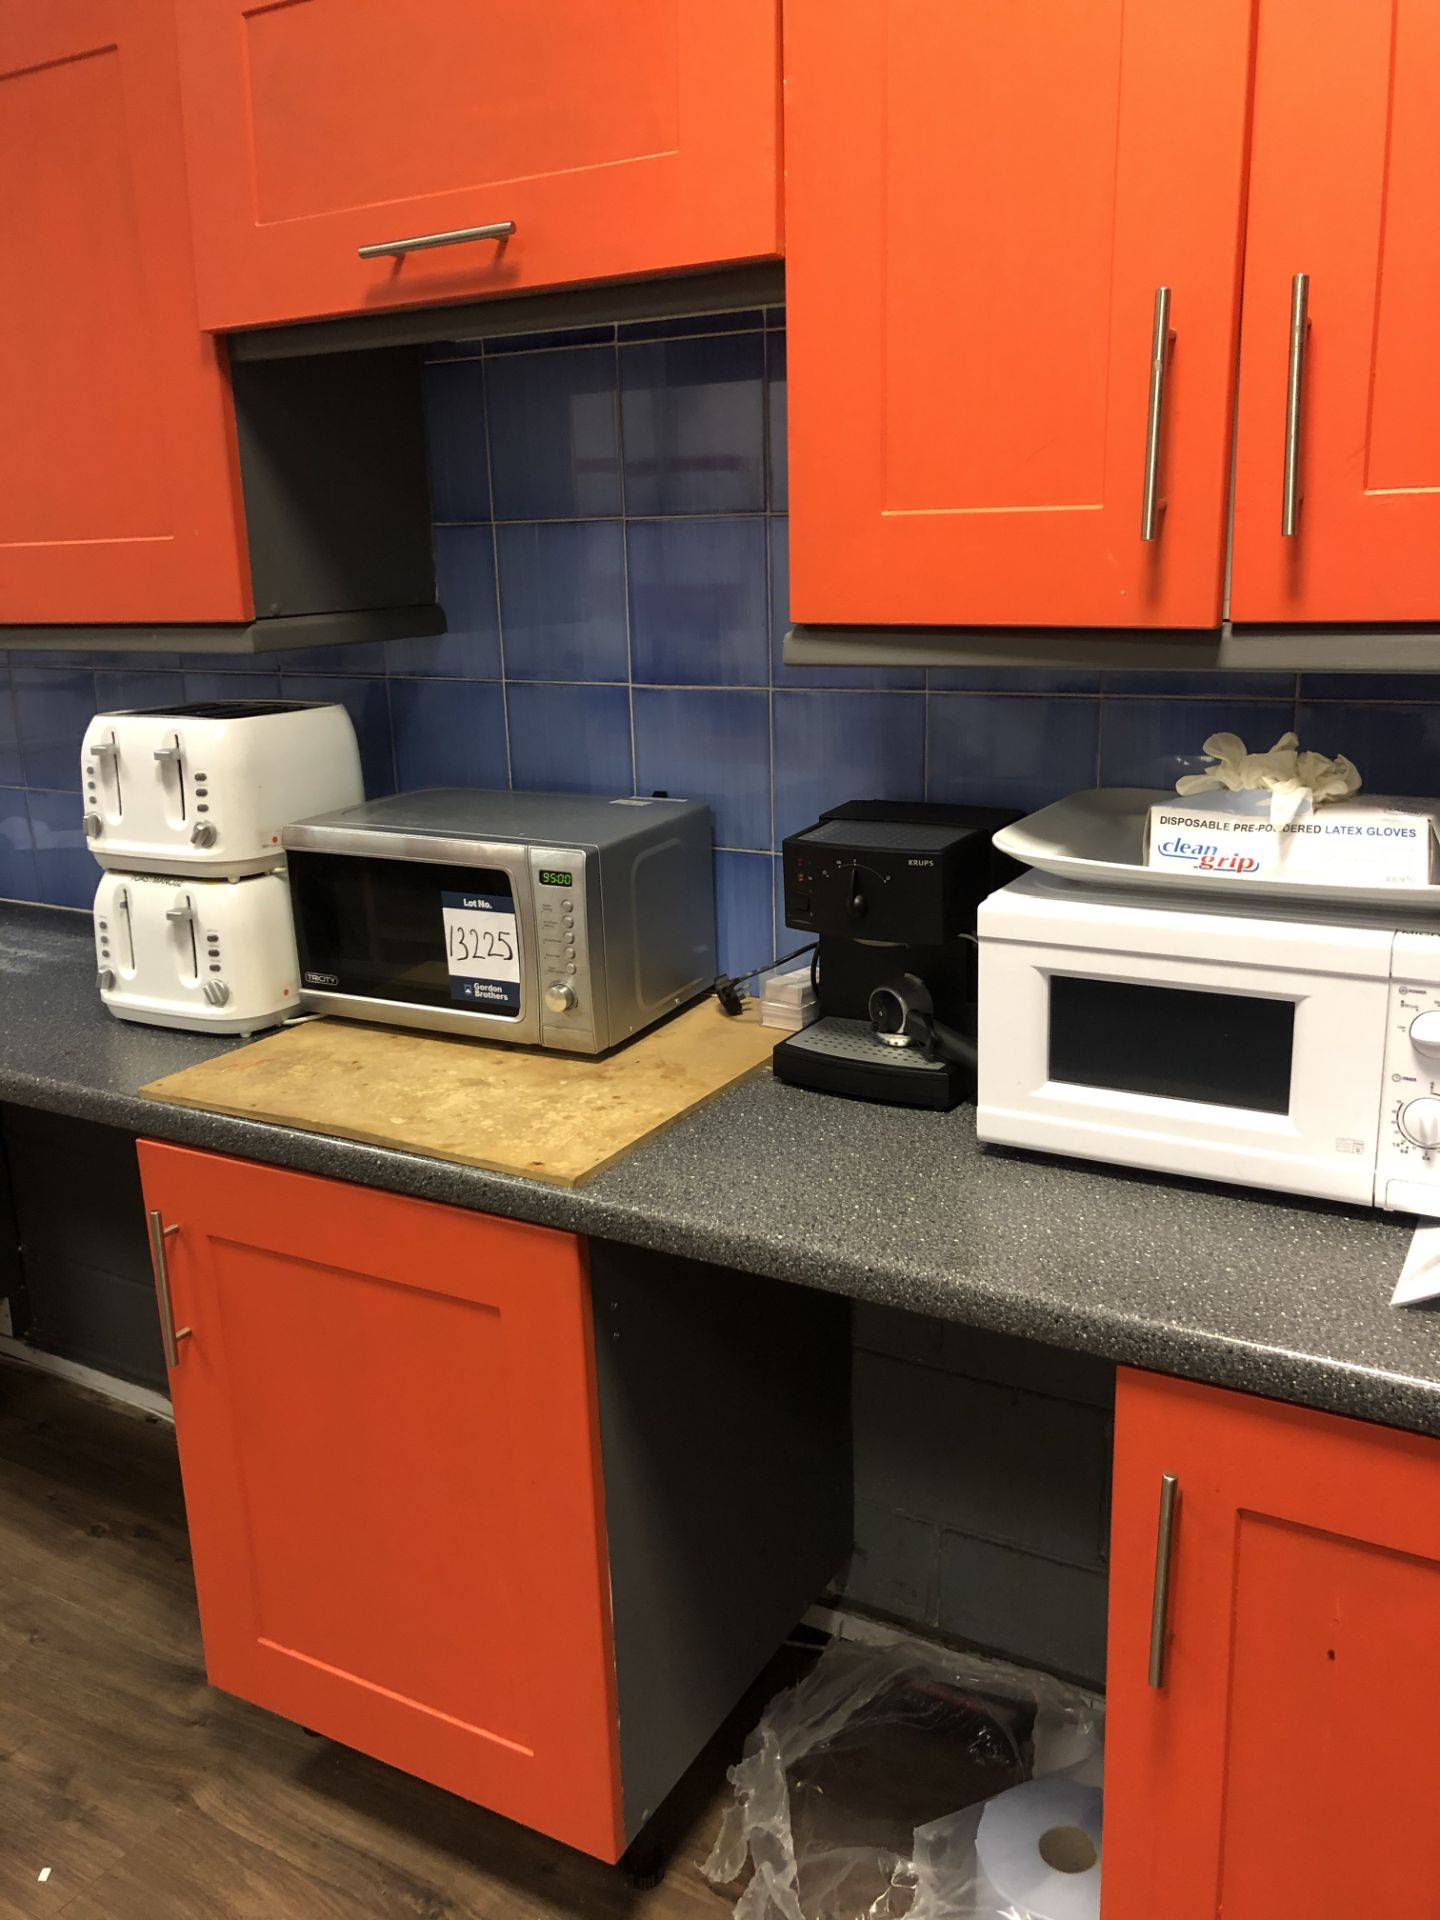 Lot 13225 - 2x No. microwave ovens, 2x toasters and Krups, cof